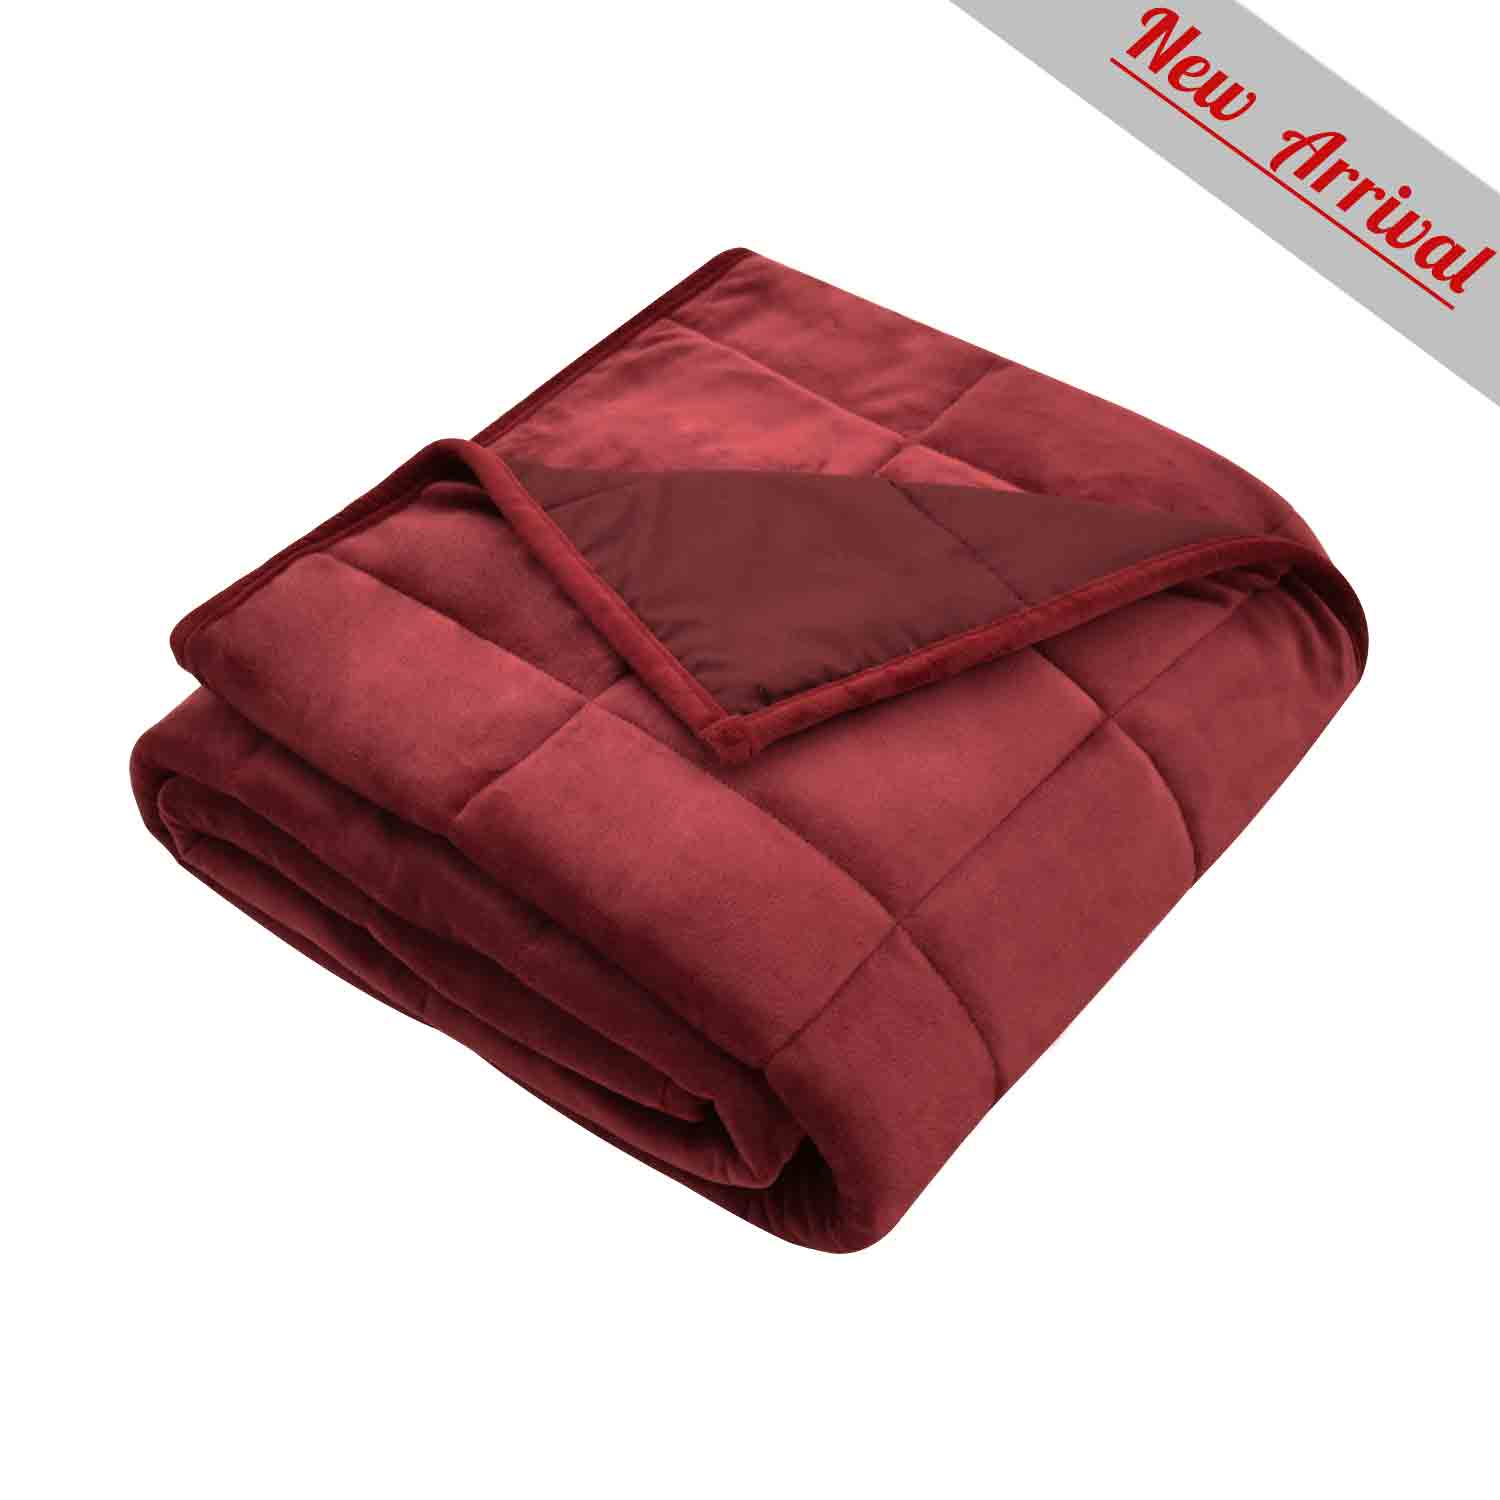 MERRYLIFE Weighted Blanket Double-sided colors - Merrylife